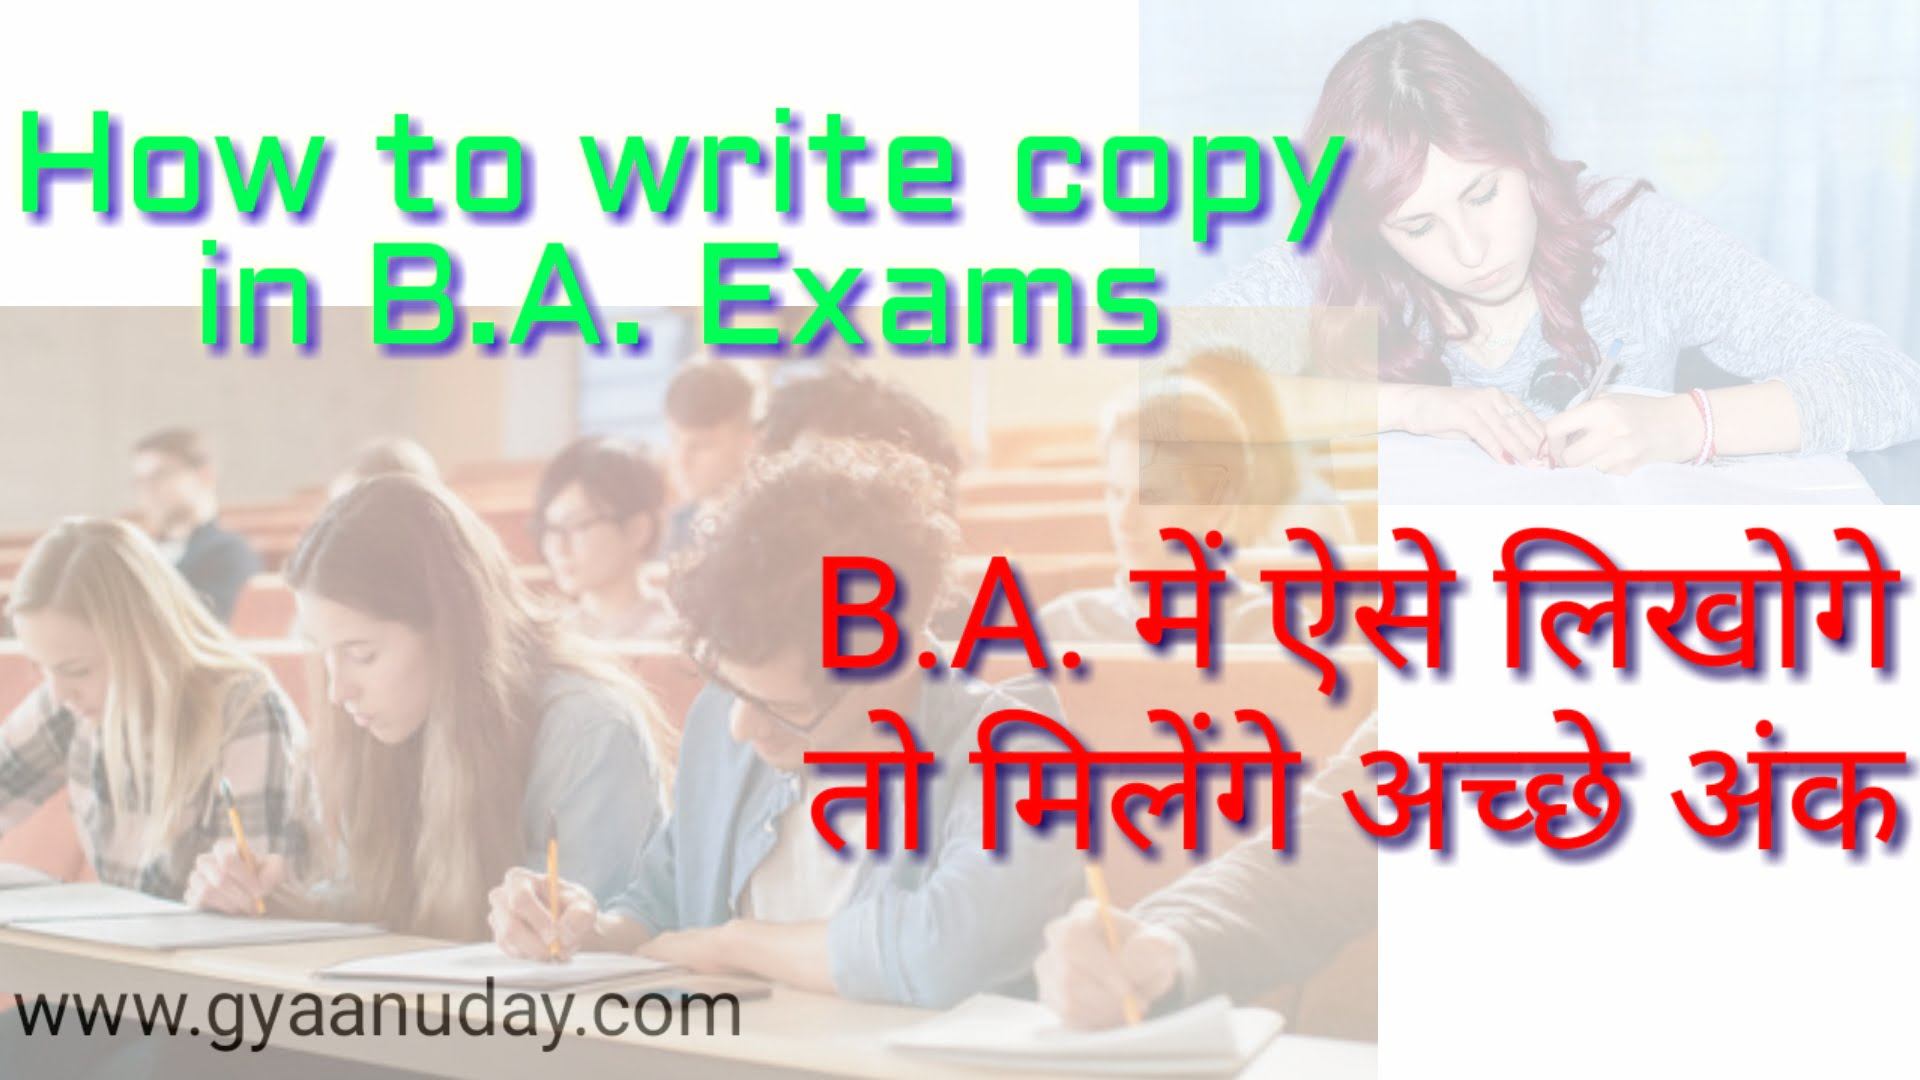 How to write paper in Exam